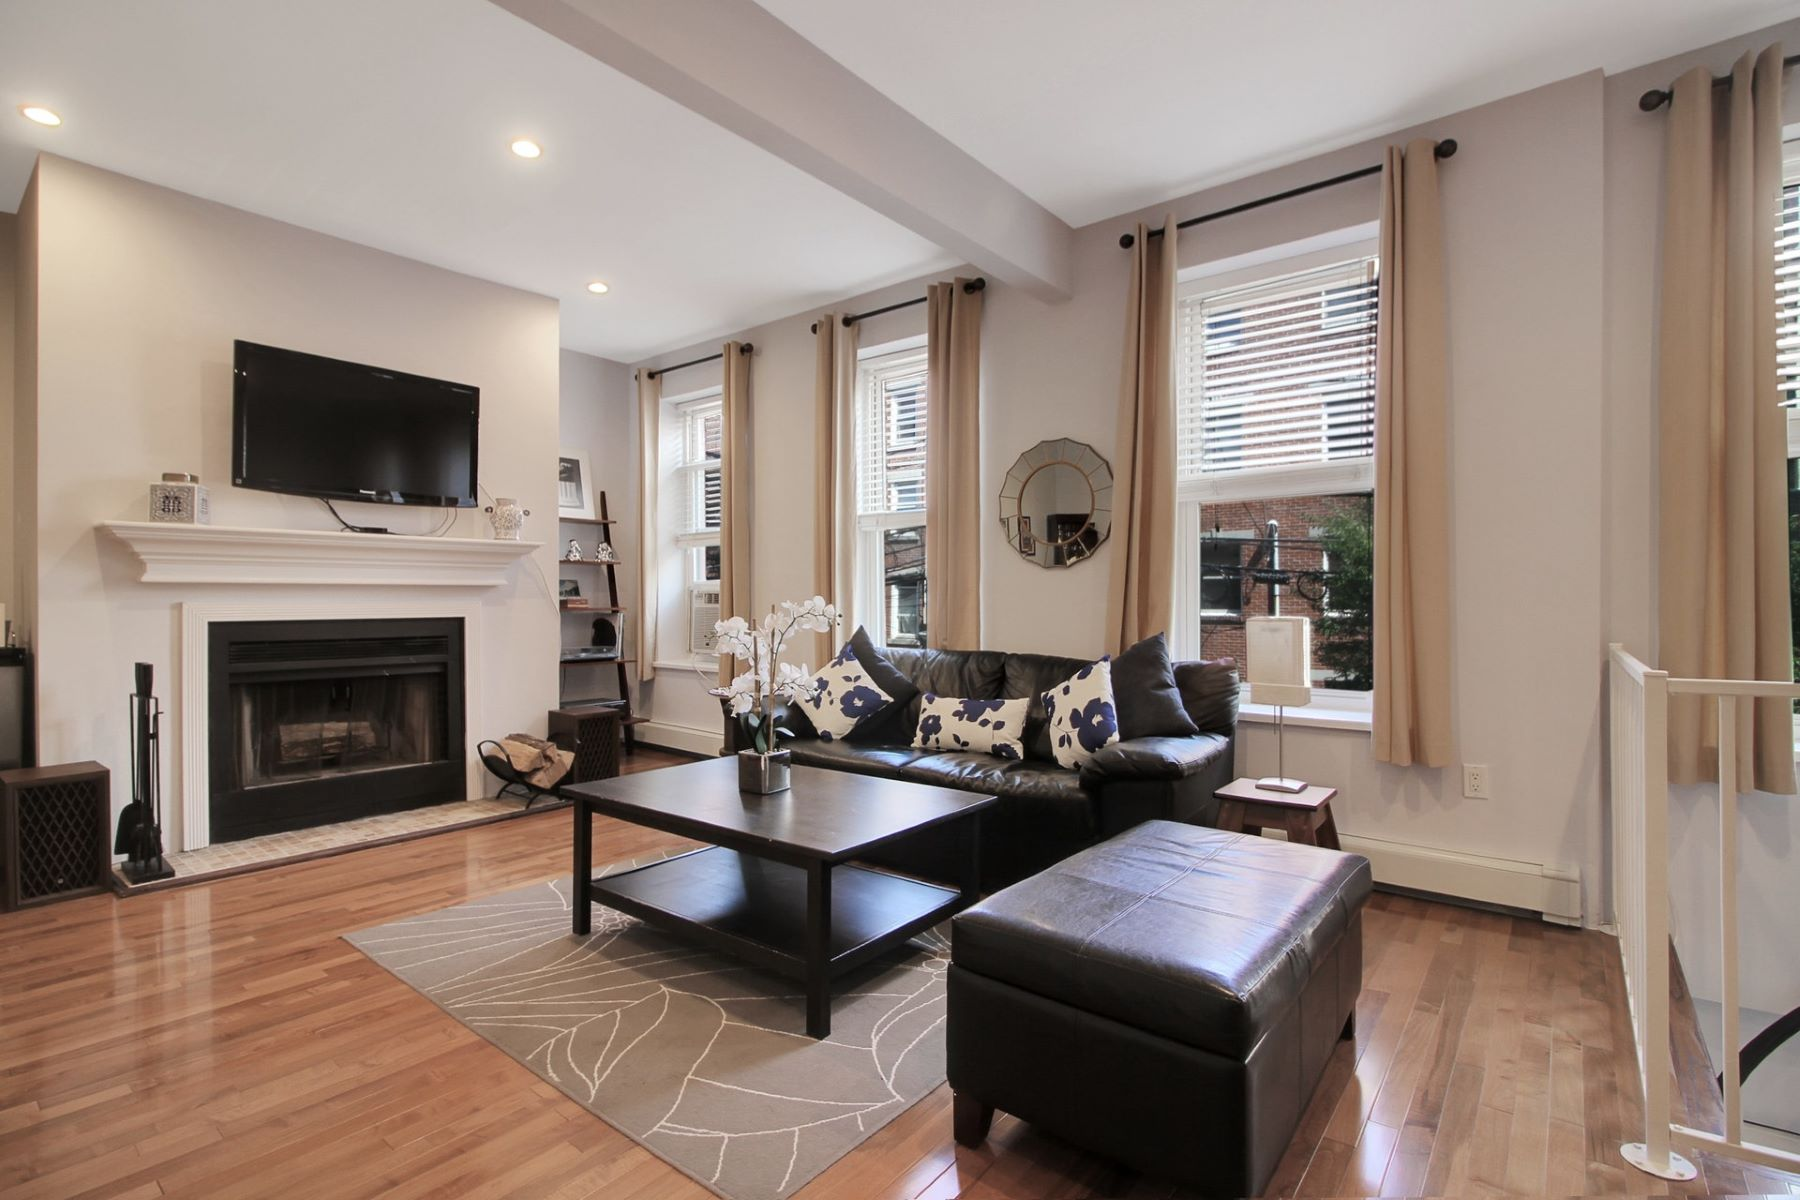 Property for Sale at One bedroom Duplex in the heart of Hoboken... 159 Newark Street #2B, Hoboken, New Jersey 07030 United States